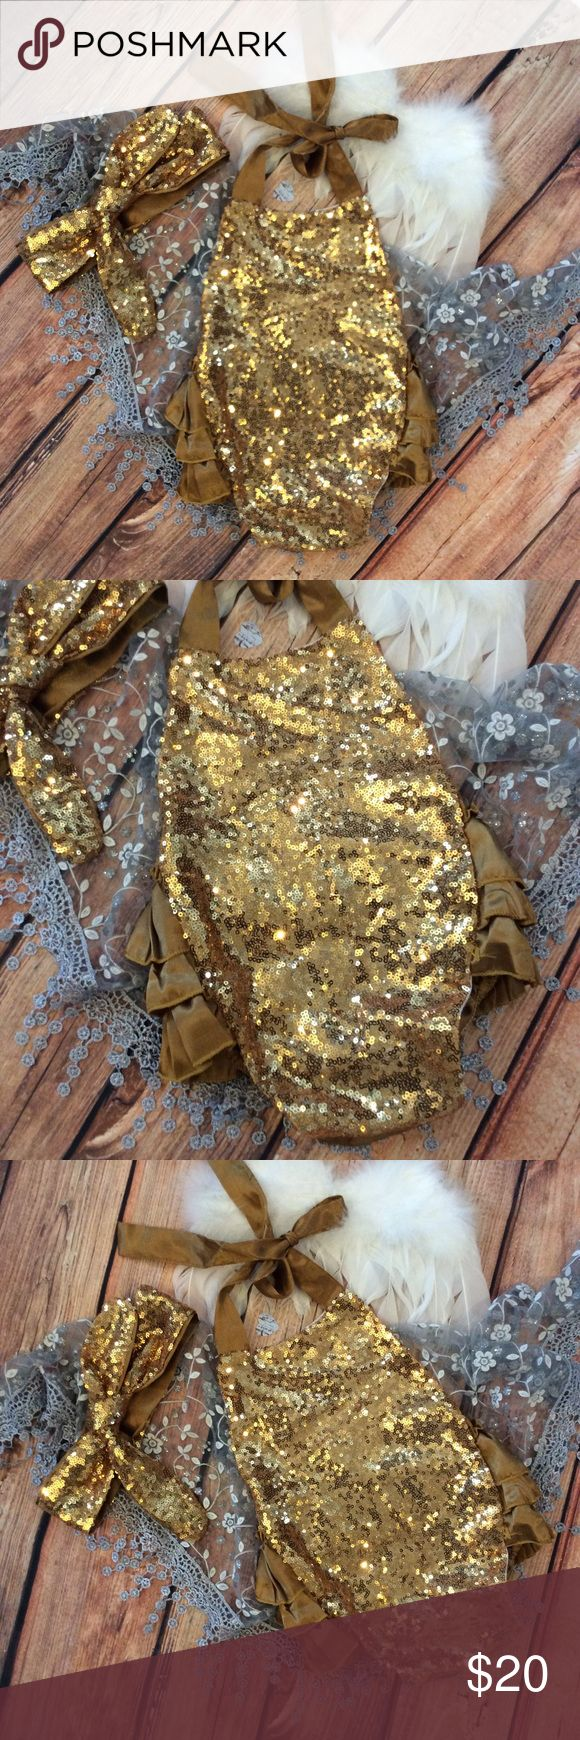 Boutique Baby Girl Gold Sequin & Ruffle Romper Gorgeous Baby Halter style gold sequin and Ruffle Romper. Adjustable silky straps at neck. Includes matching sequin headband. Cute for milestone photos too. One Pieces Bodysuits